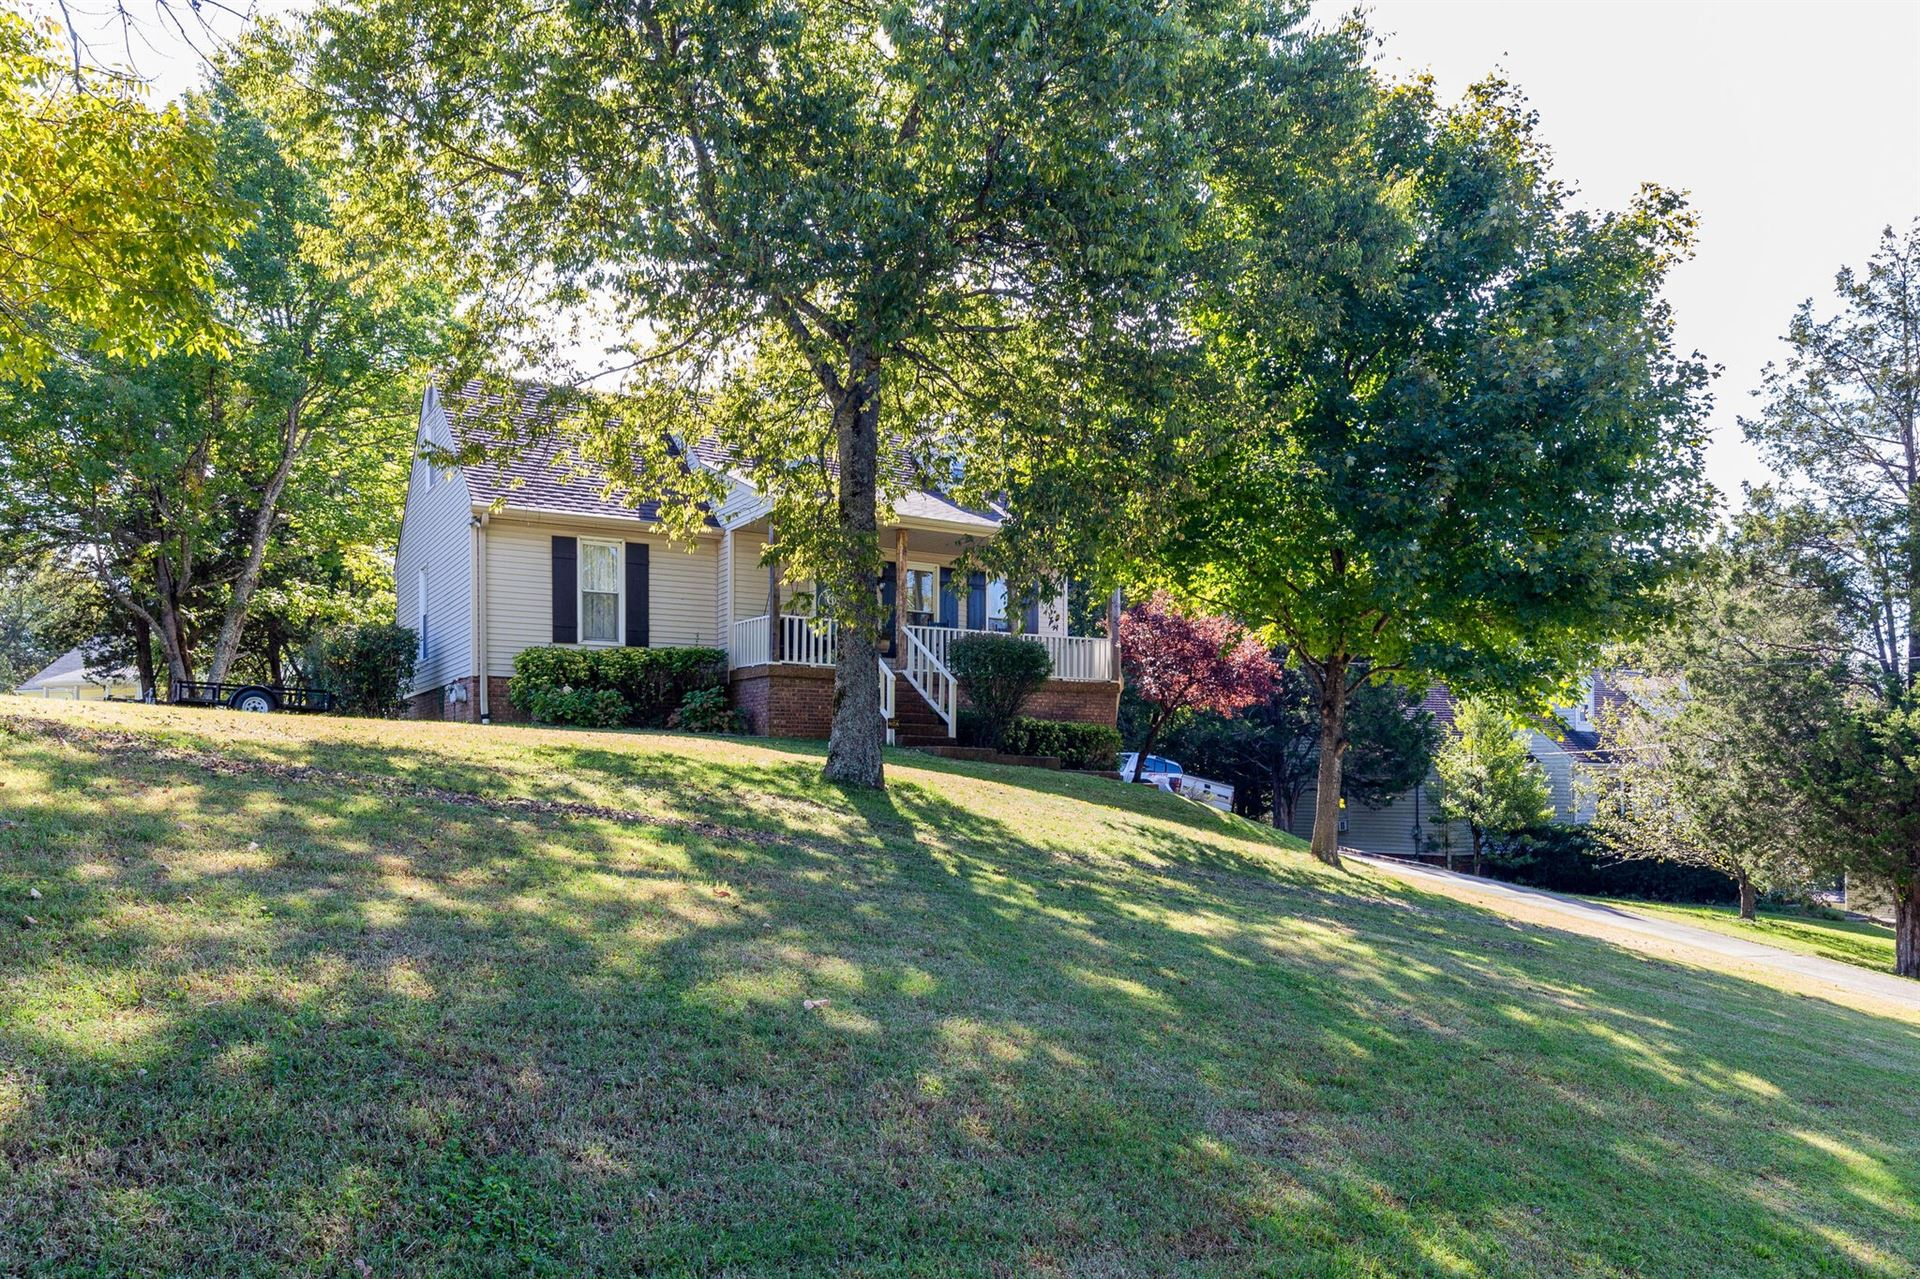 Photo of 1228 Countryside Rd, Nolensville, TN 37135 (MLS # 2301725)